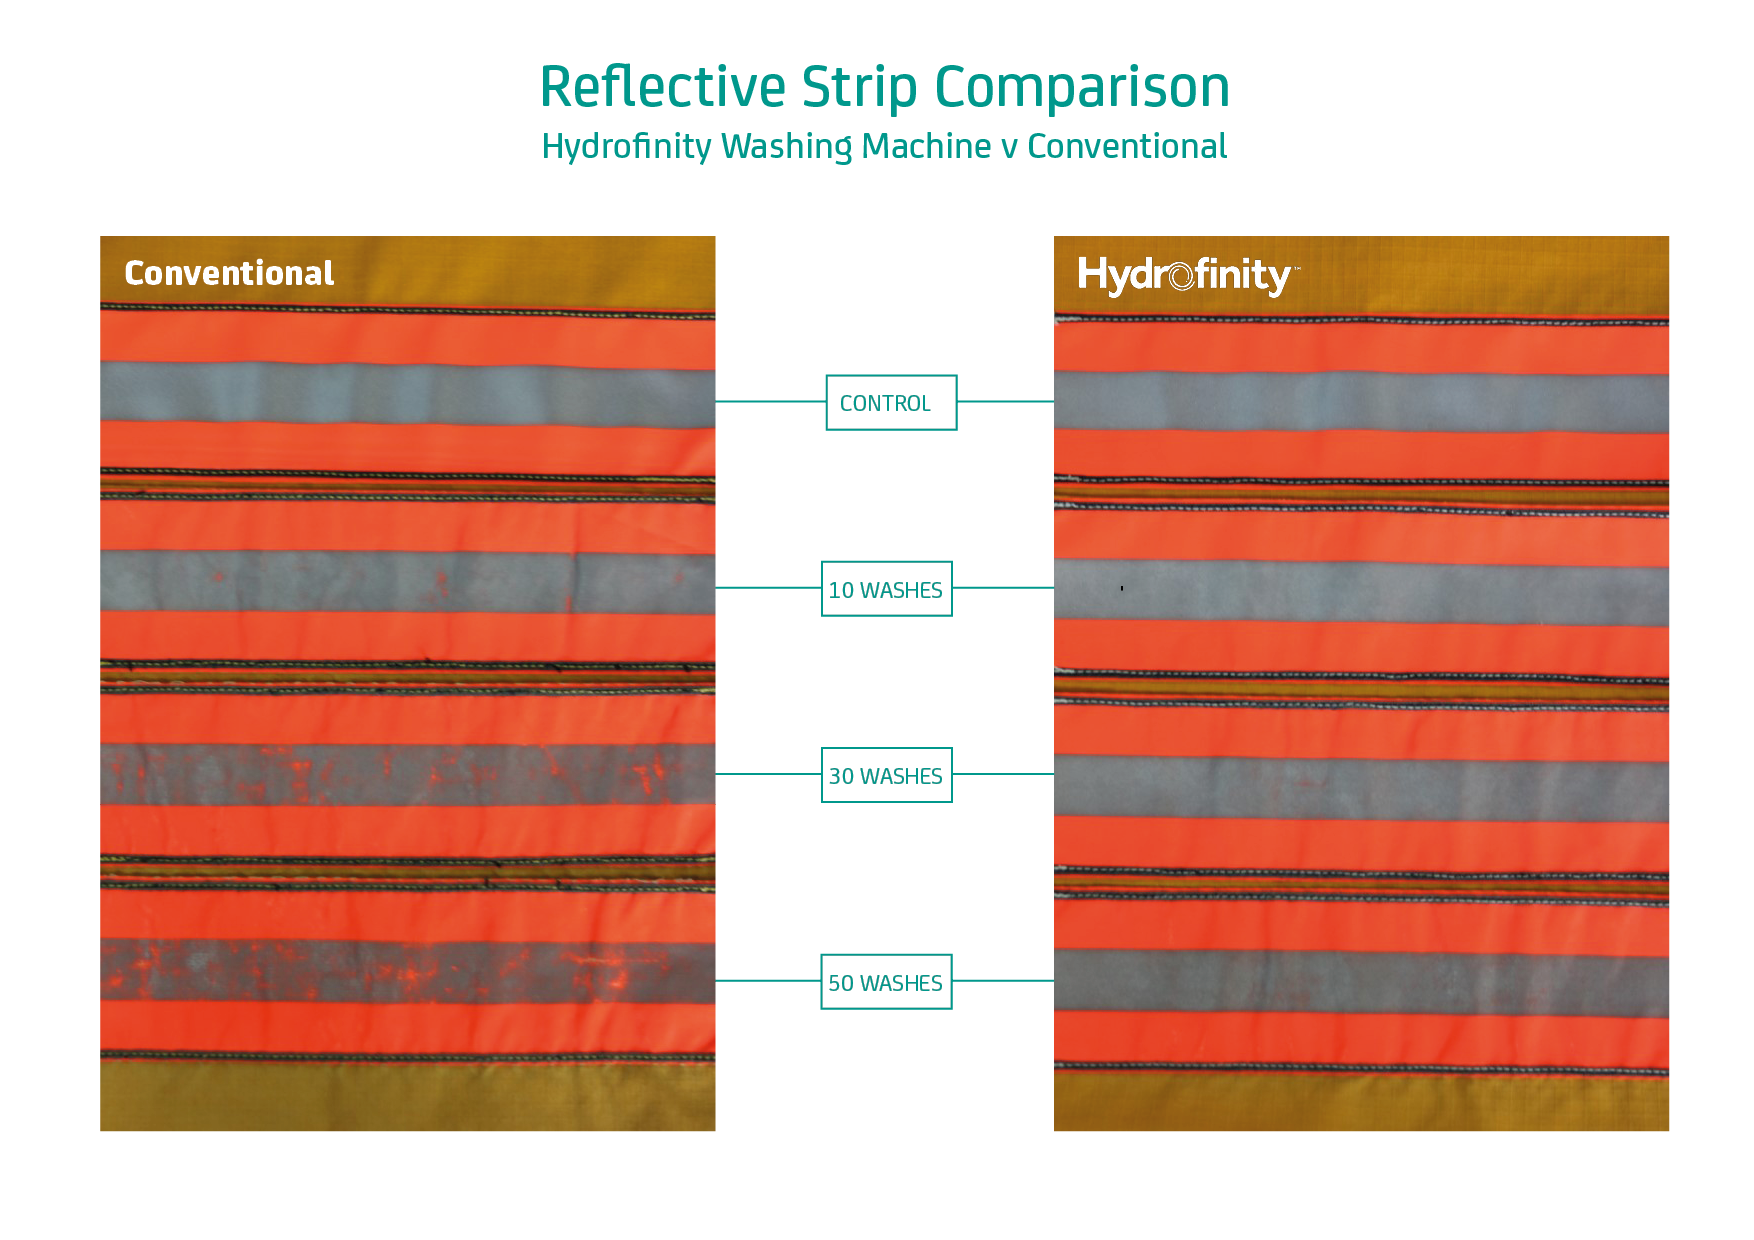 Reflective strip comparison